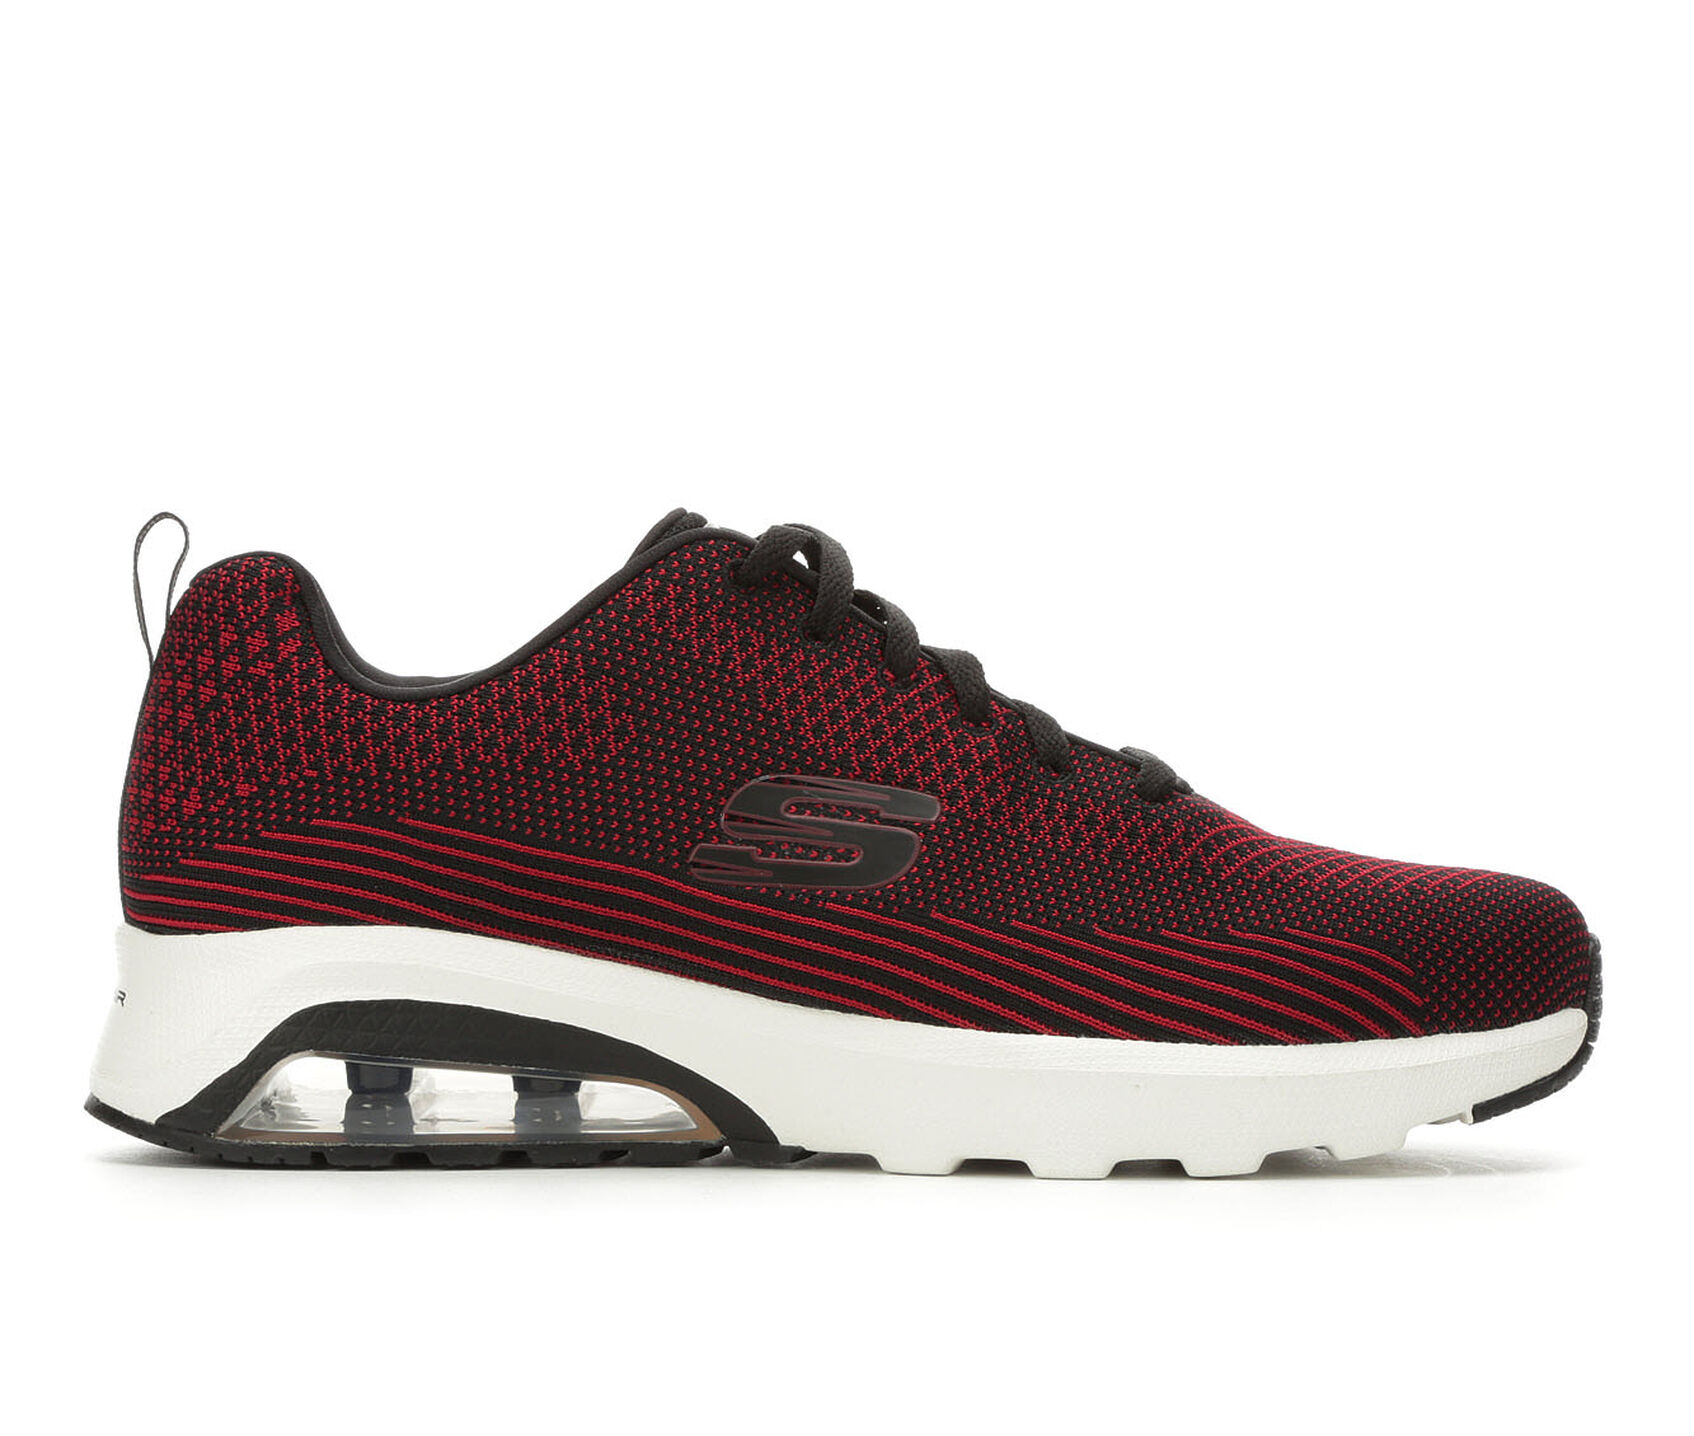 c99390527de6 Men's Skechers Skech AIr 51490 Running Shoes | Shoe Carnival